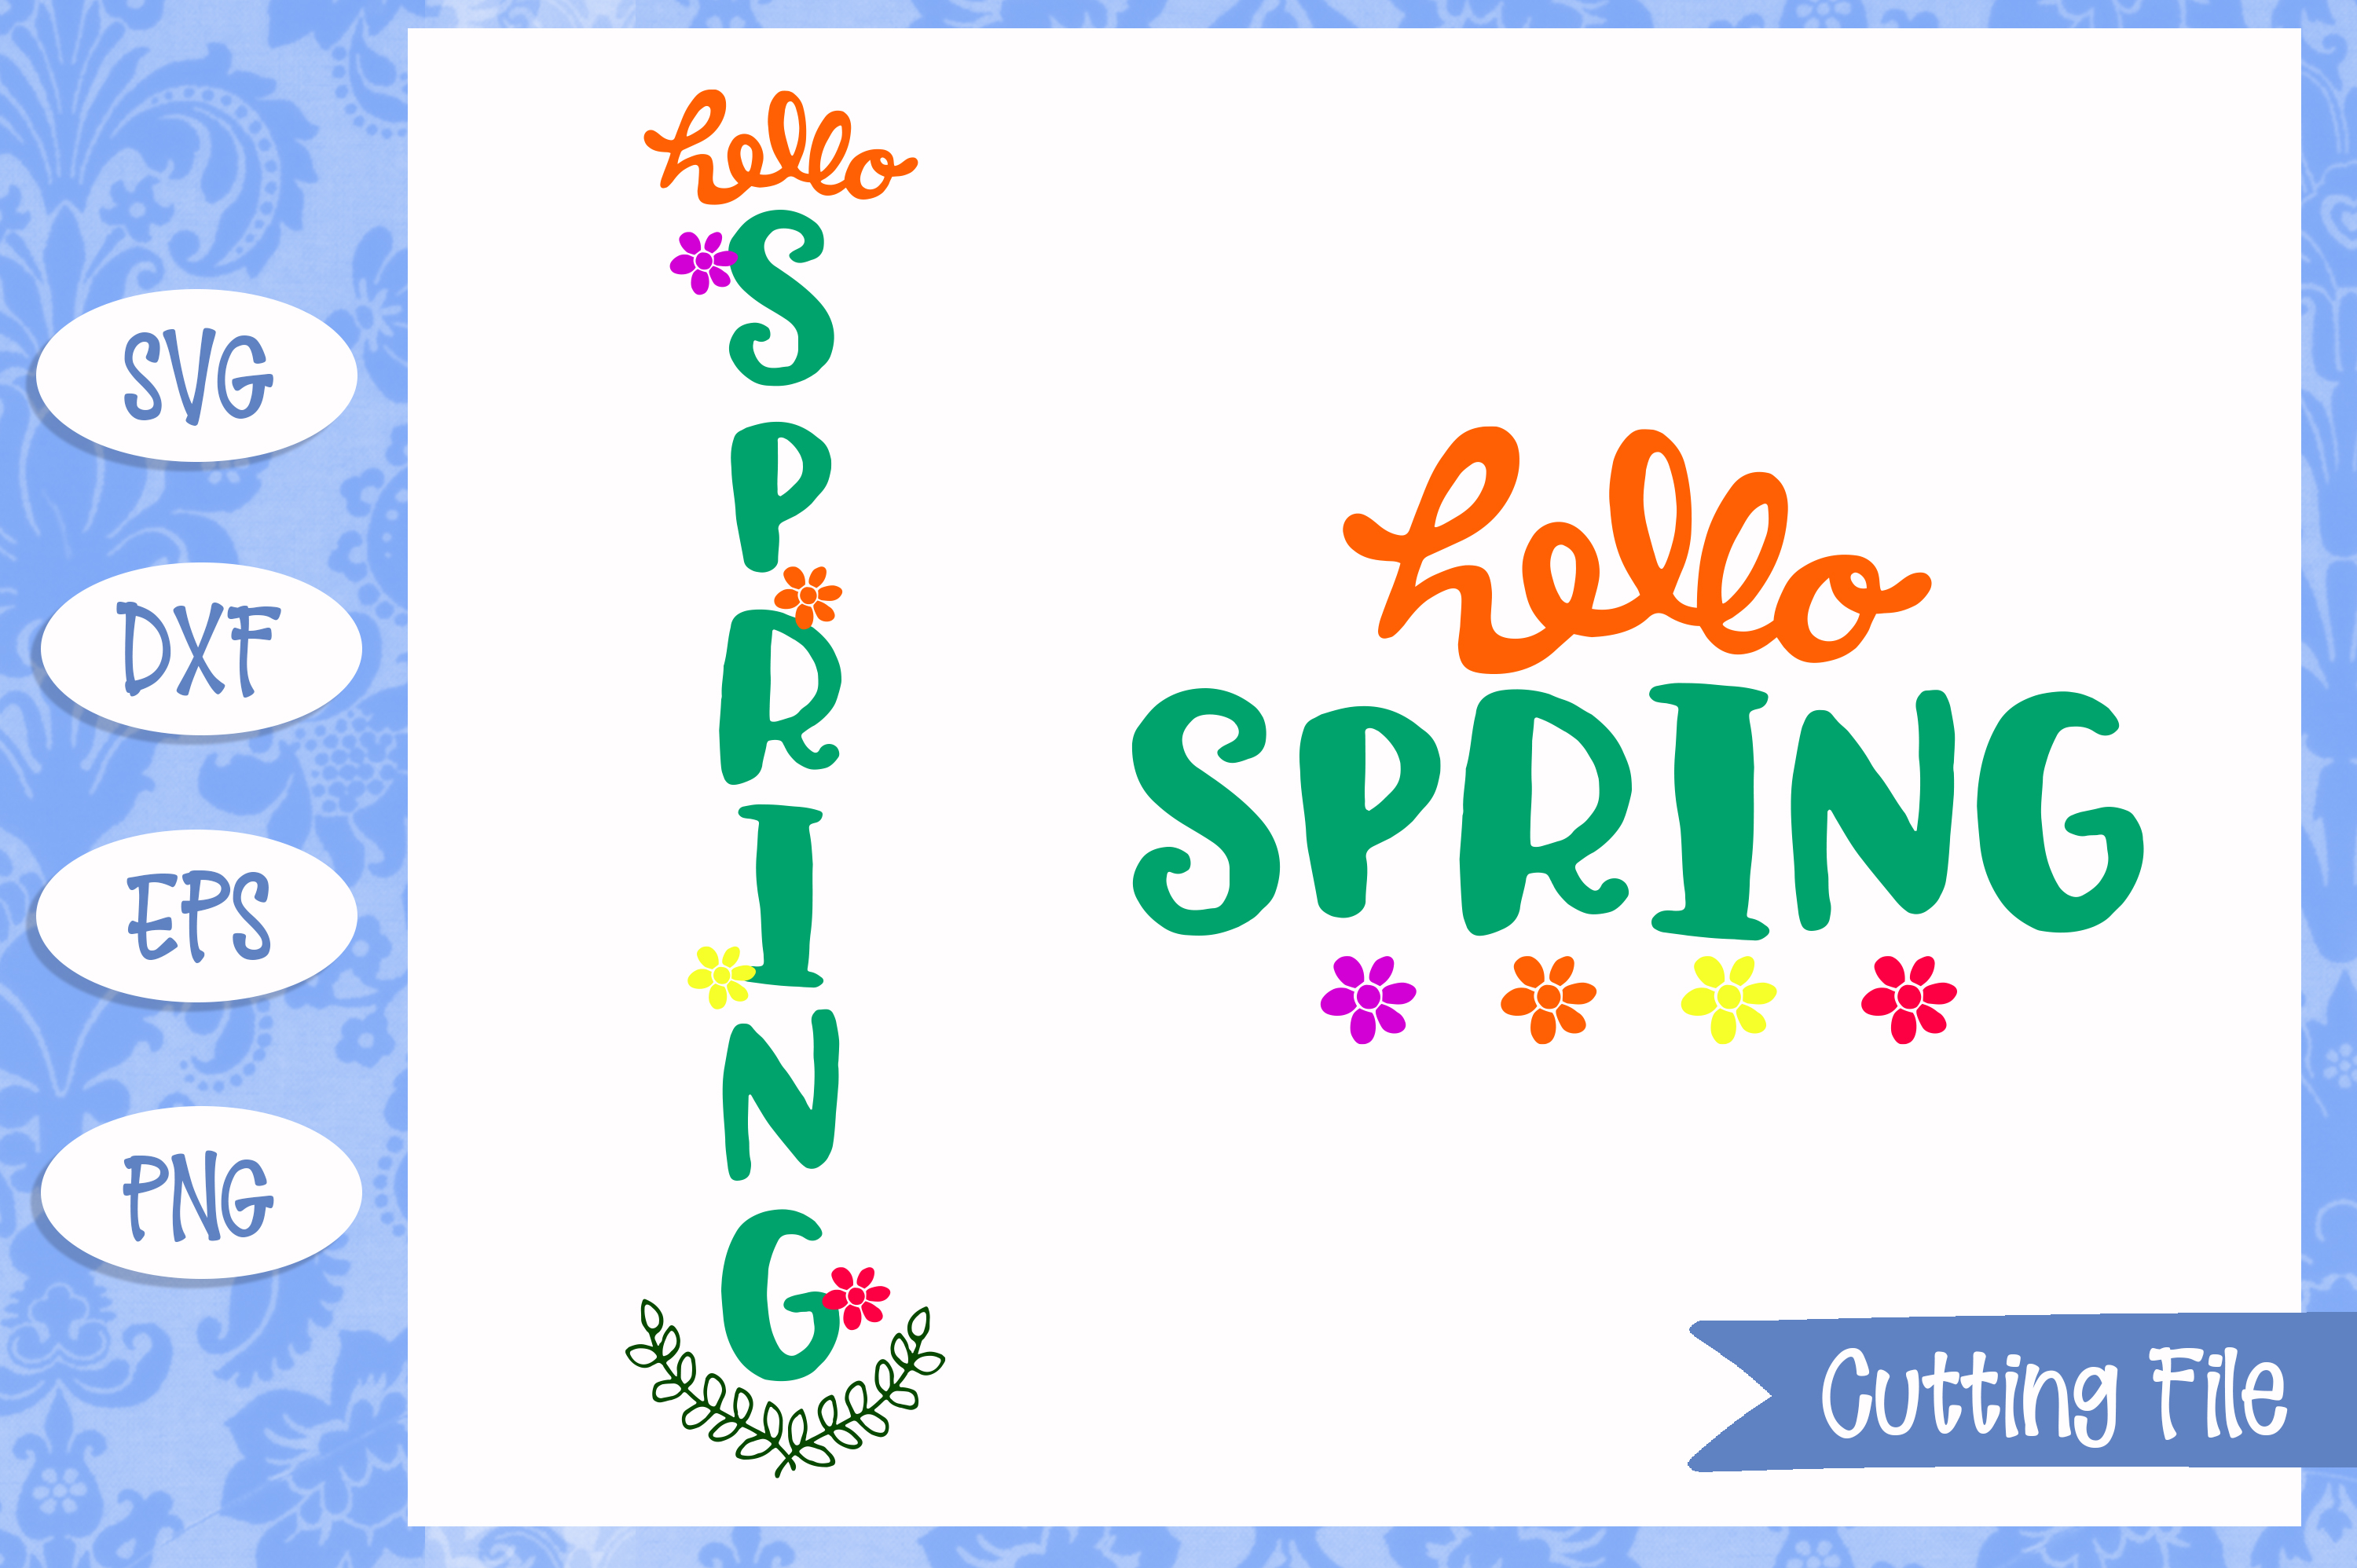 Hello Spring SVG File example image 1